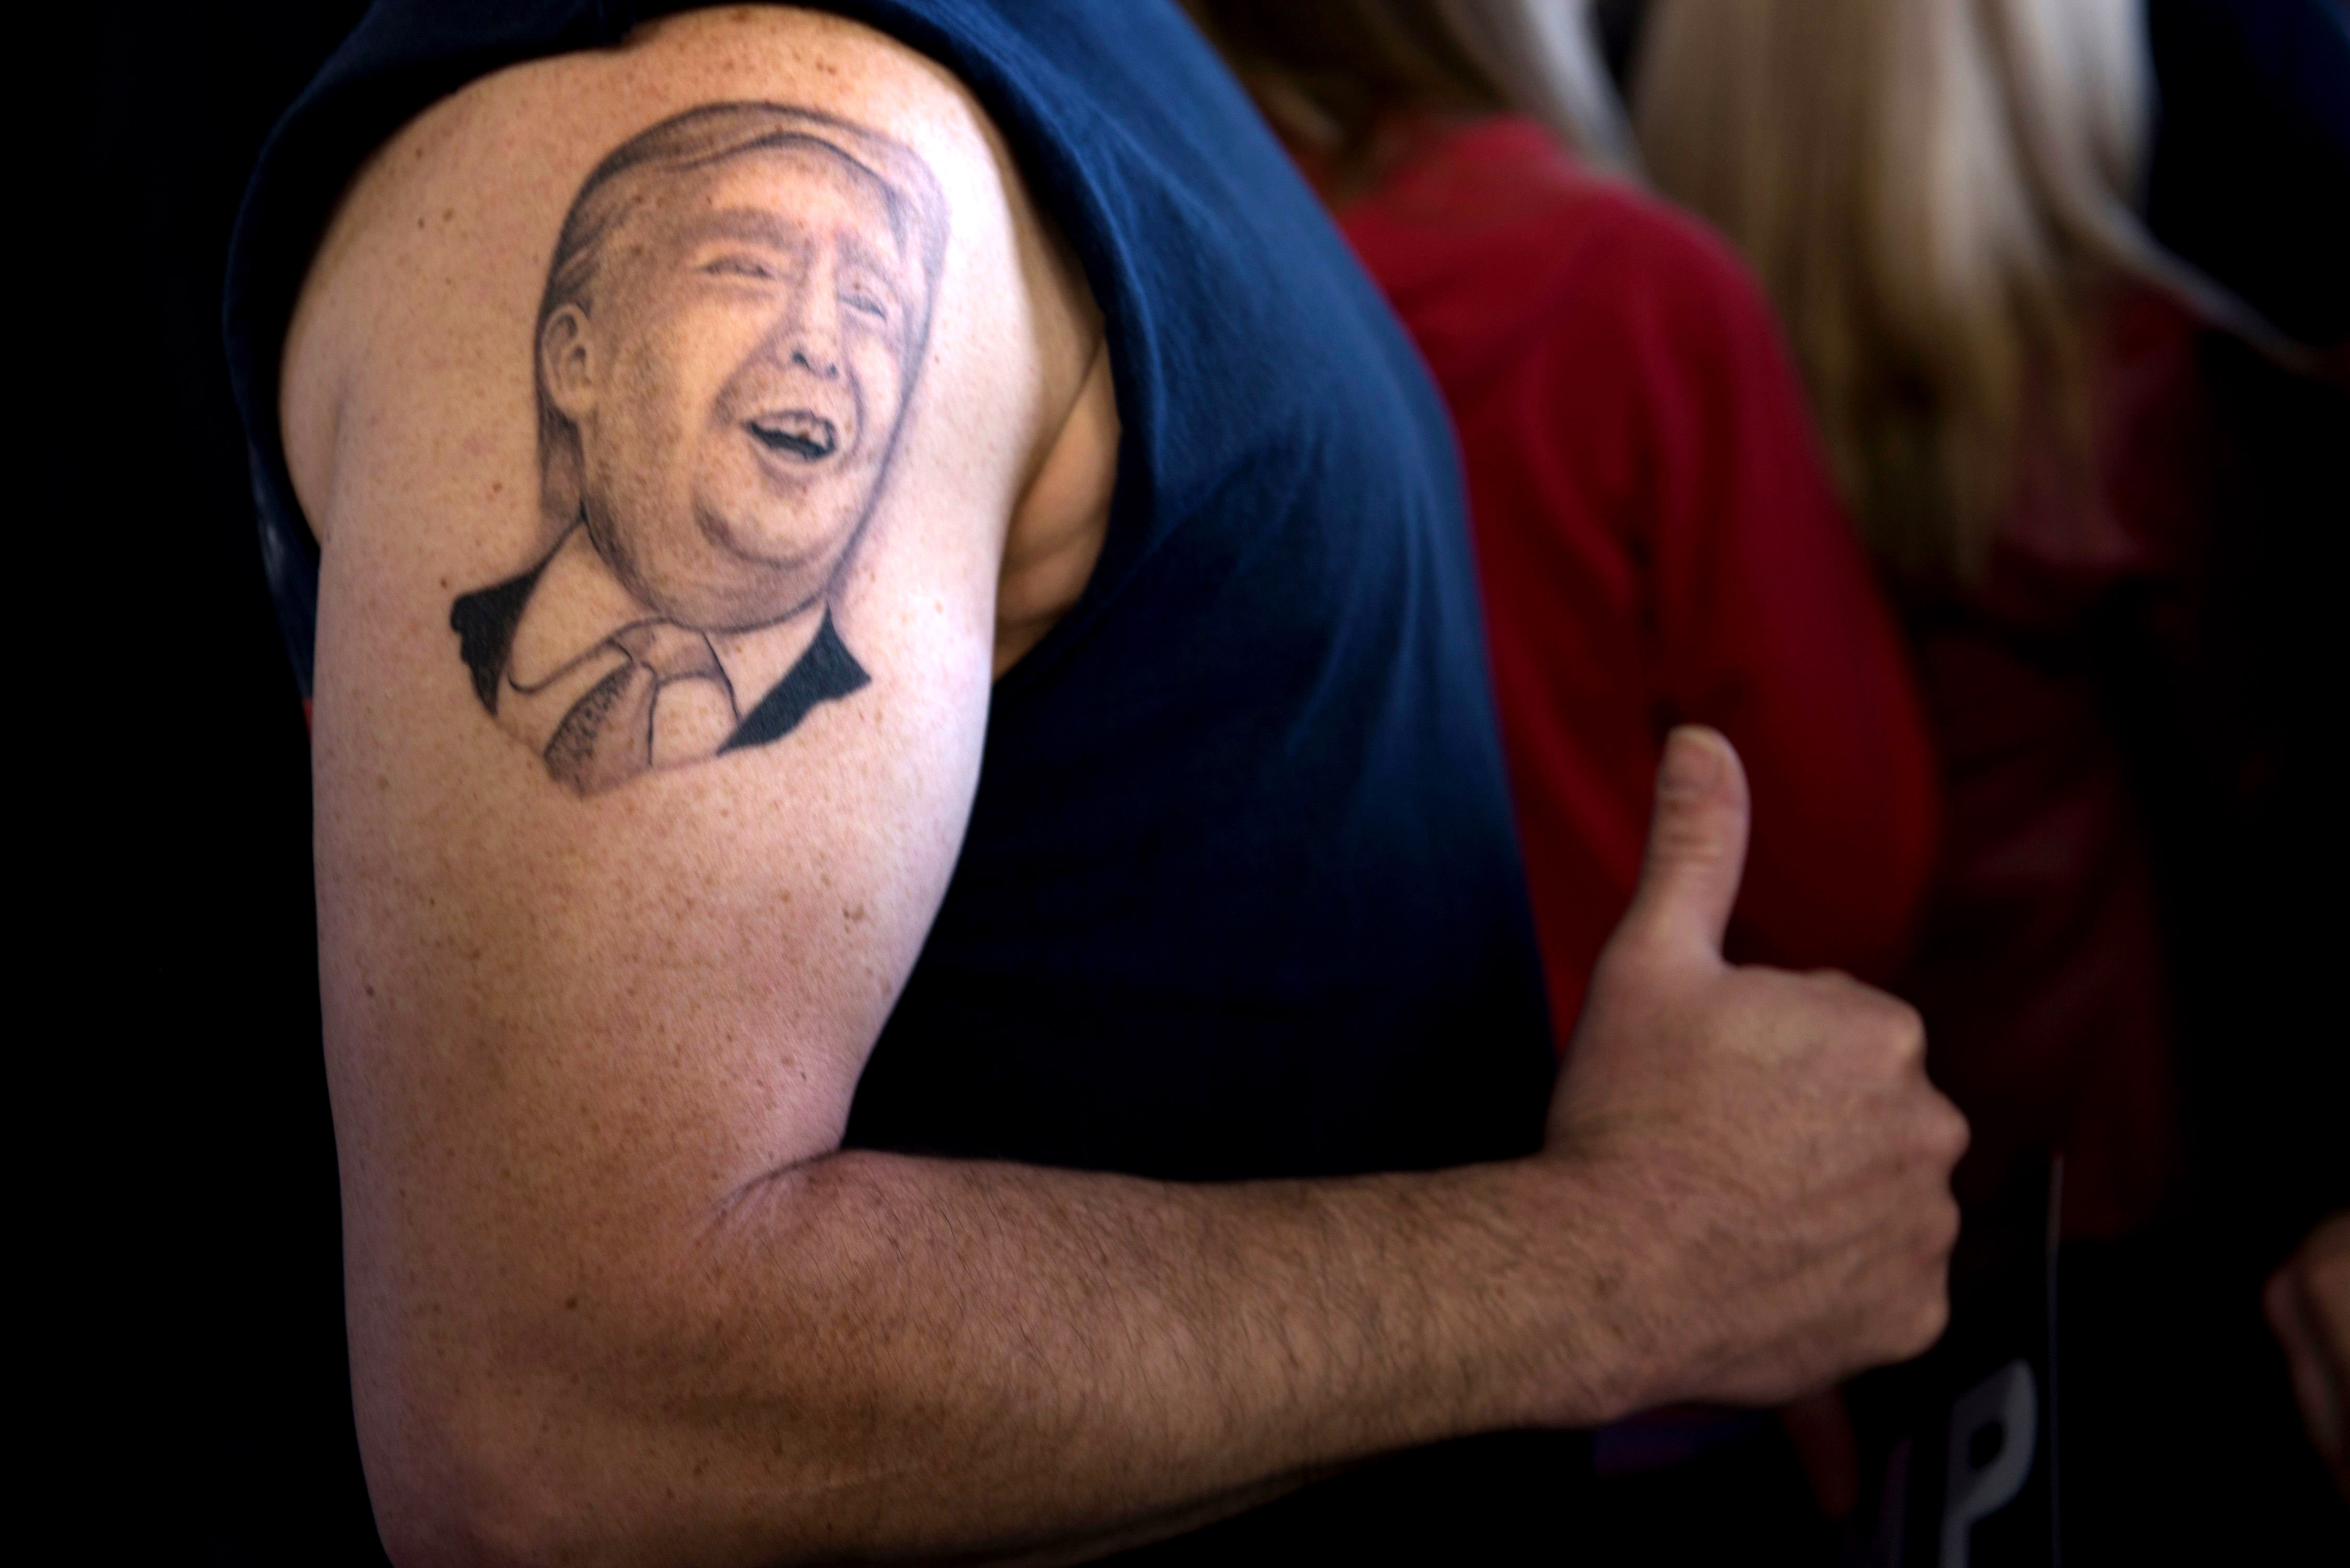 Anthony Borbell shows off his tattoo, a likeness of Donald Trump, during a rally on March 14 in Vienna Center, Ohio.